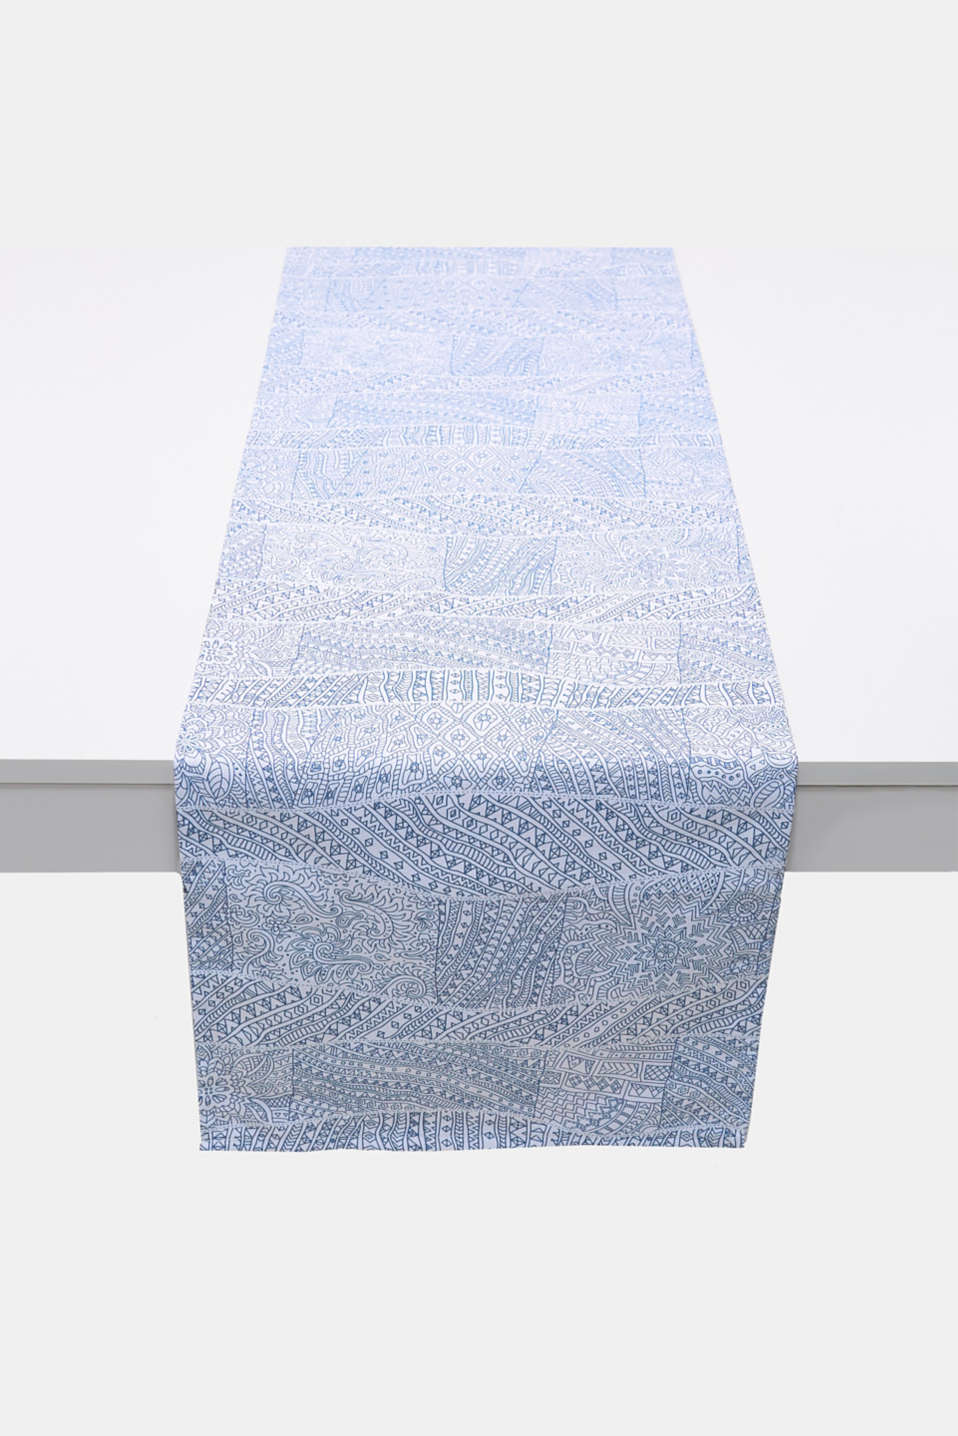 Esprit - Cotton table runner with a digital print